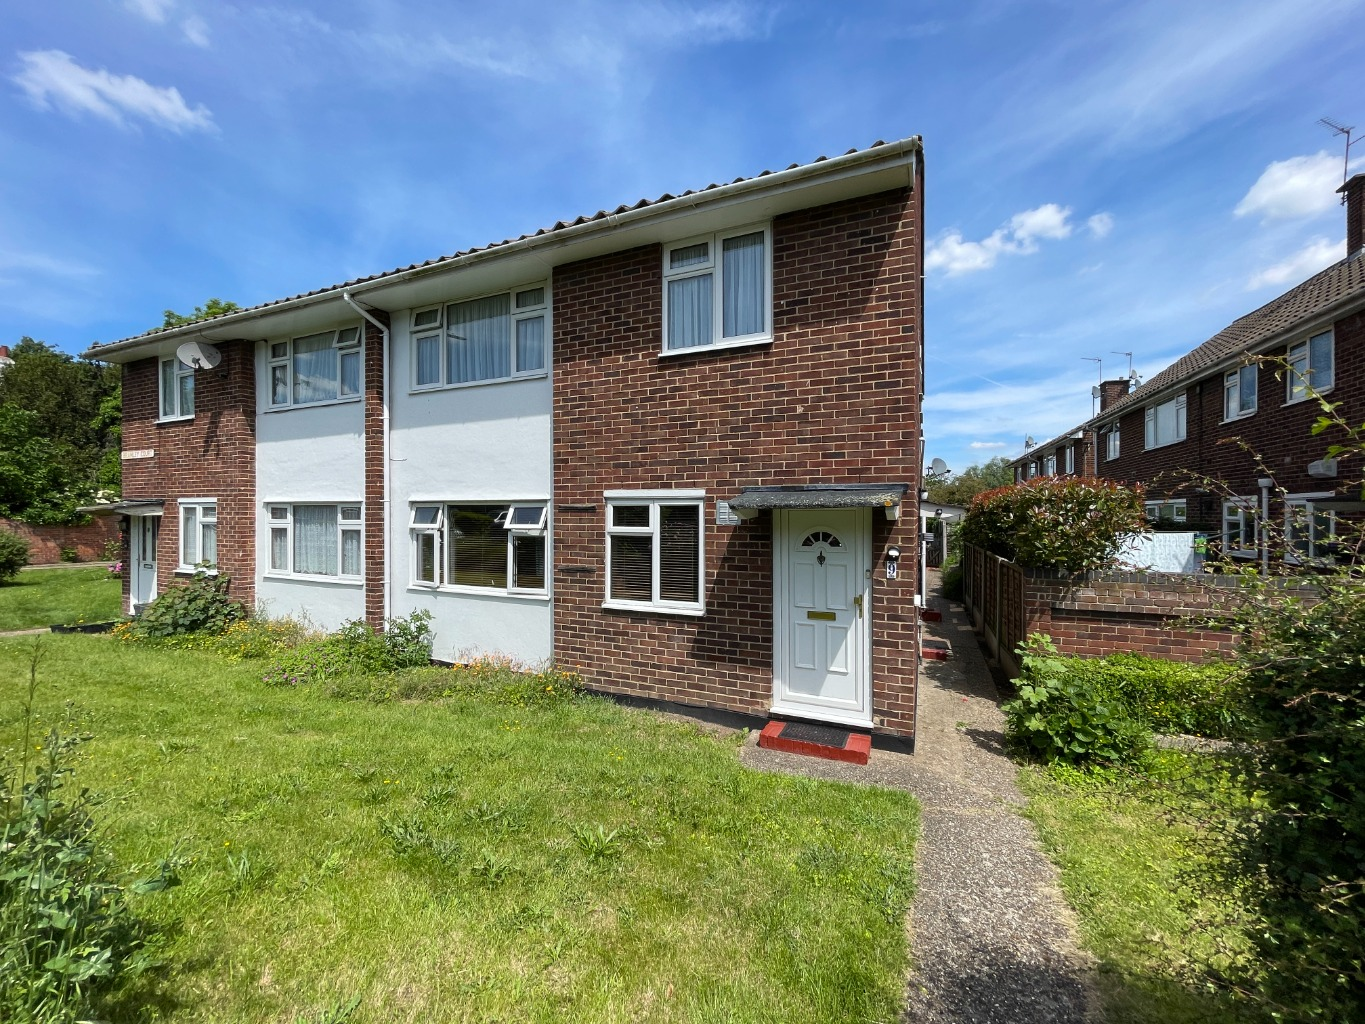 2 bed apartment for sale in Bramley Court, Wickham Street, Welling, DA16